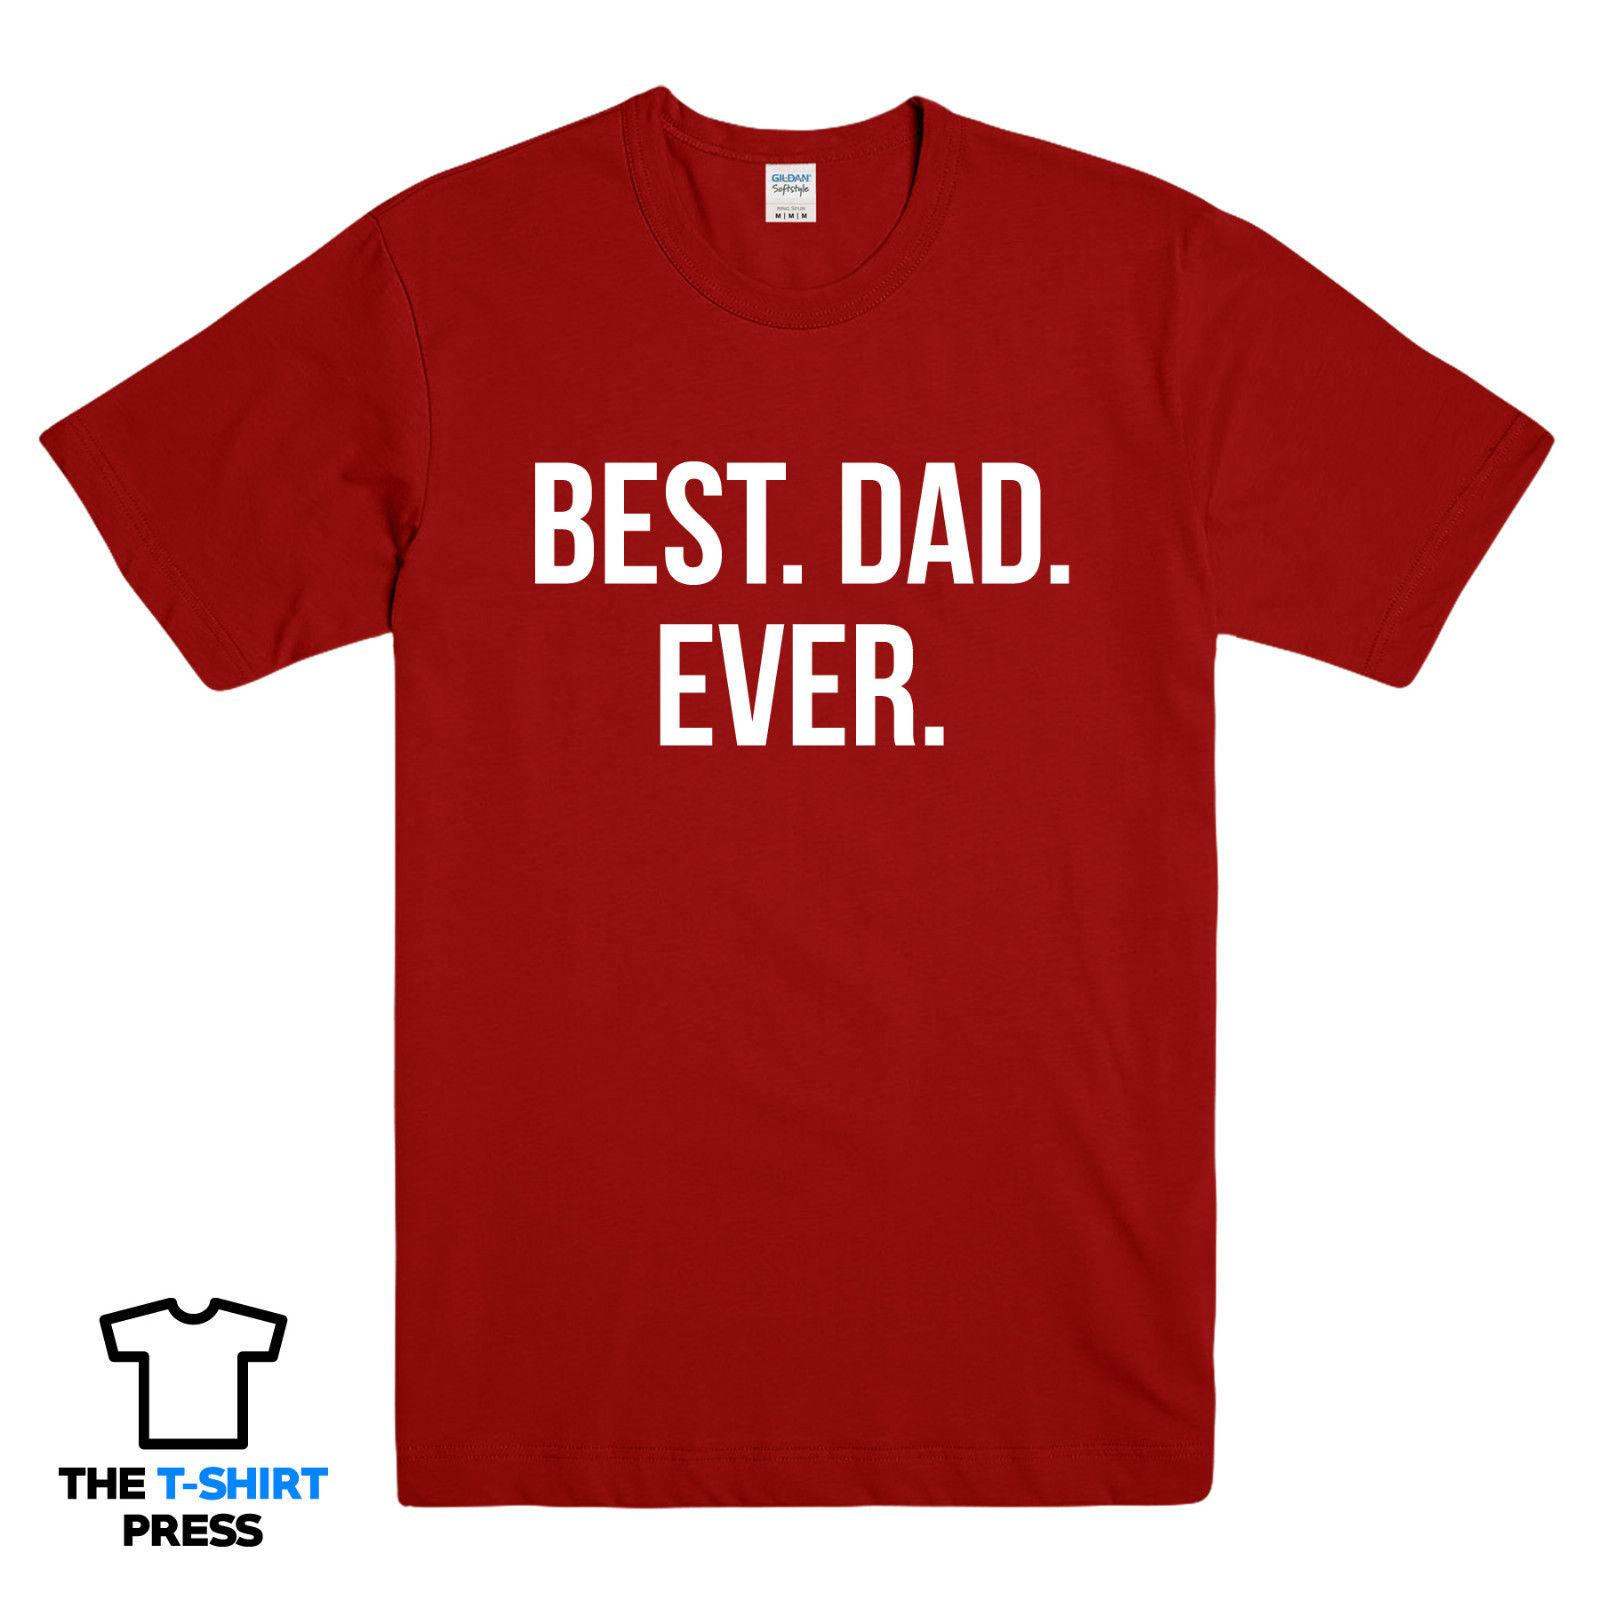 eb63ee609 BEST DAD EVER PRINTED MENS T SHIRT FATHERS DAY BIRTHDAY GIFT DADDY COOL TEE  Funny Unisex Casual Tshirt Tee Shirt Designs Humorous T Shirts From  Buyfriendly, ...